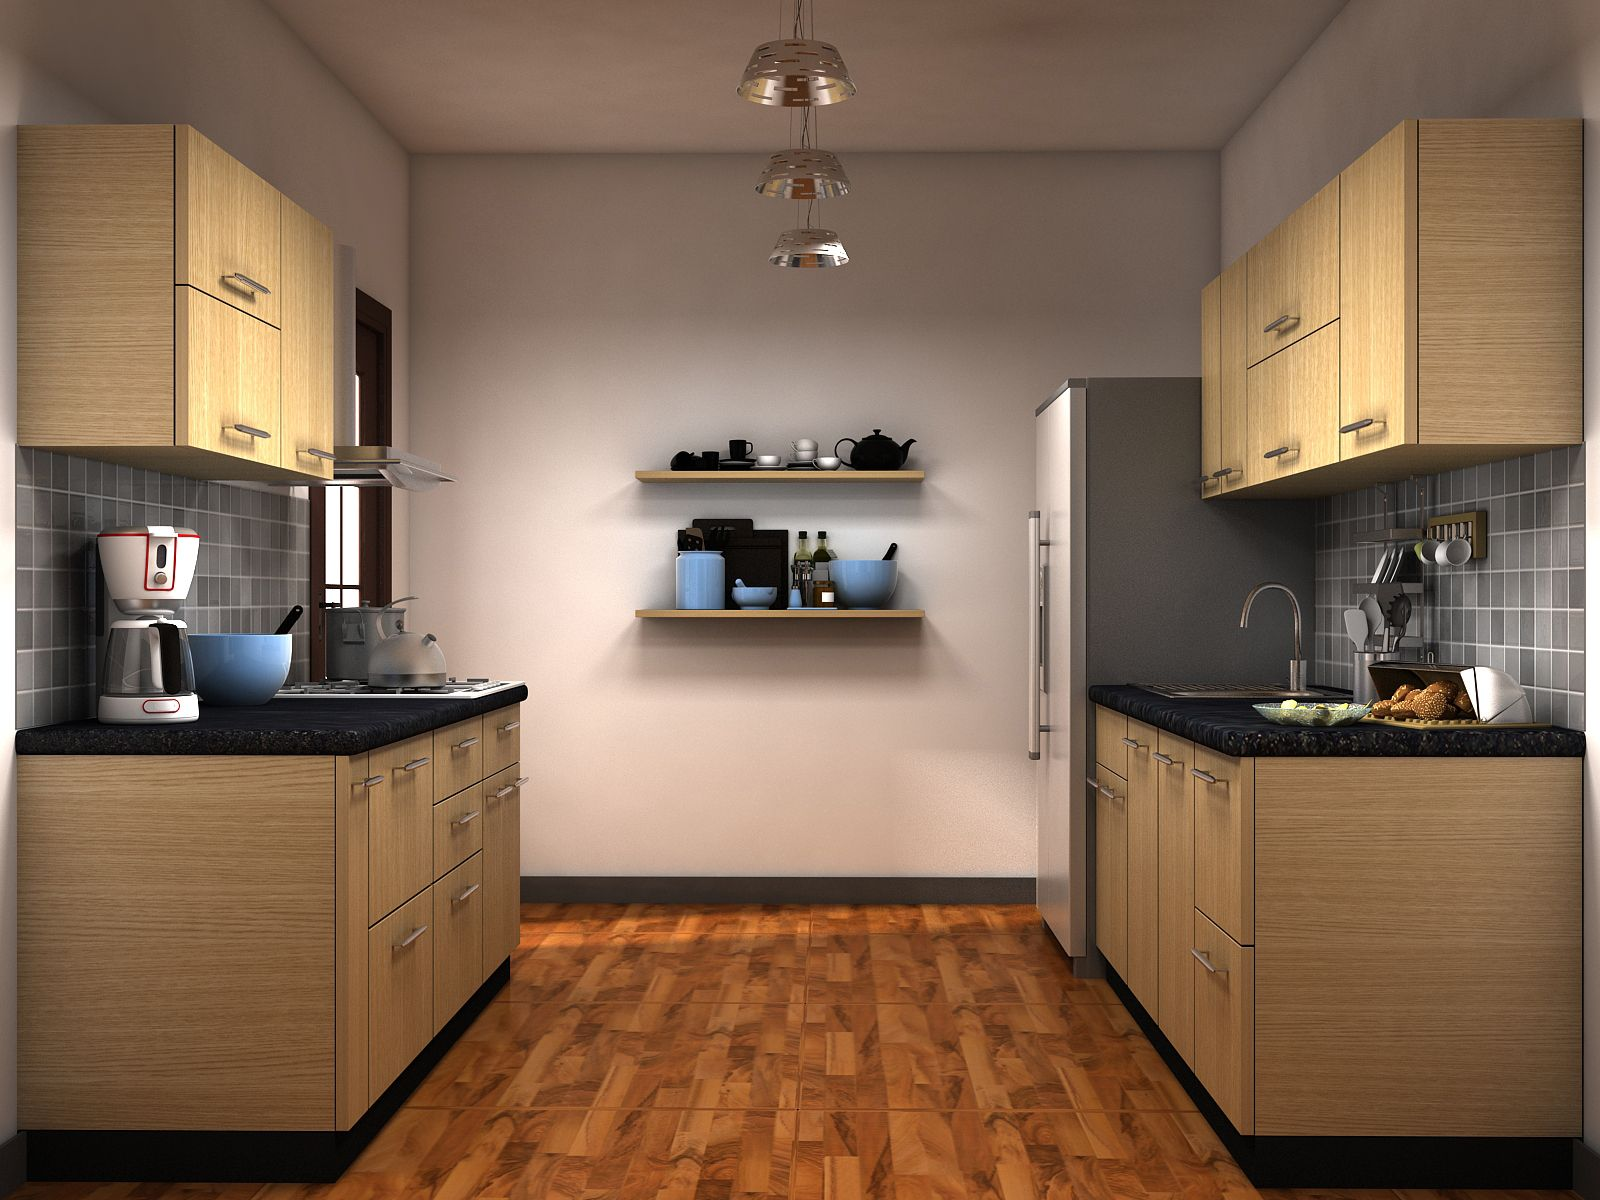 Parallel modular kitchen designs Home Kitchen